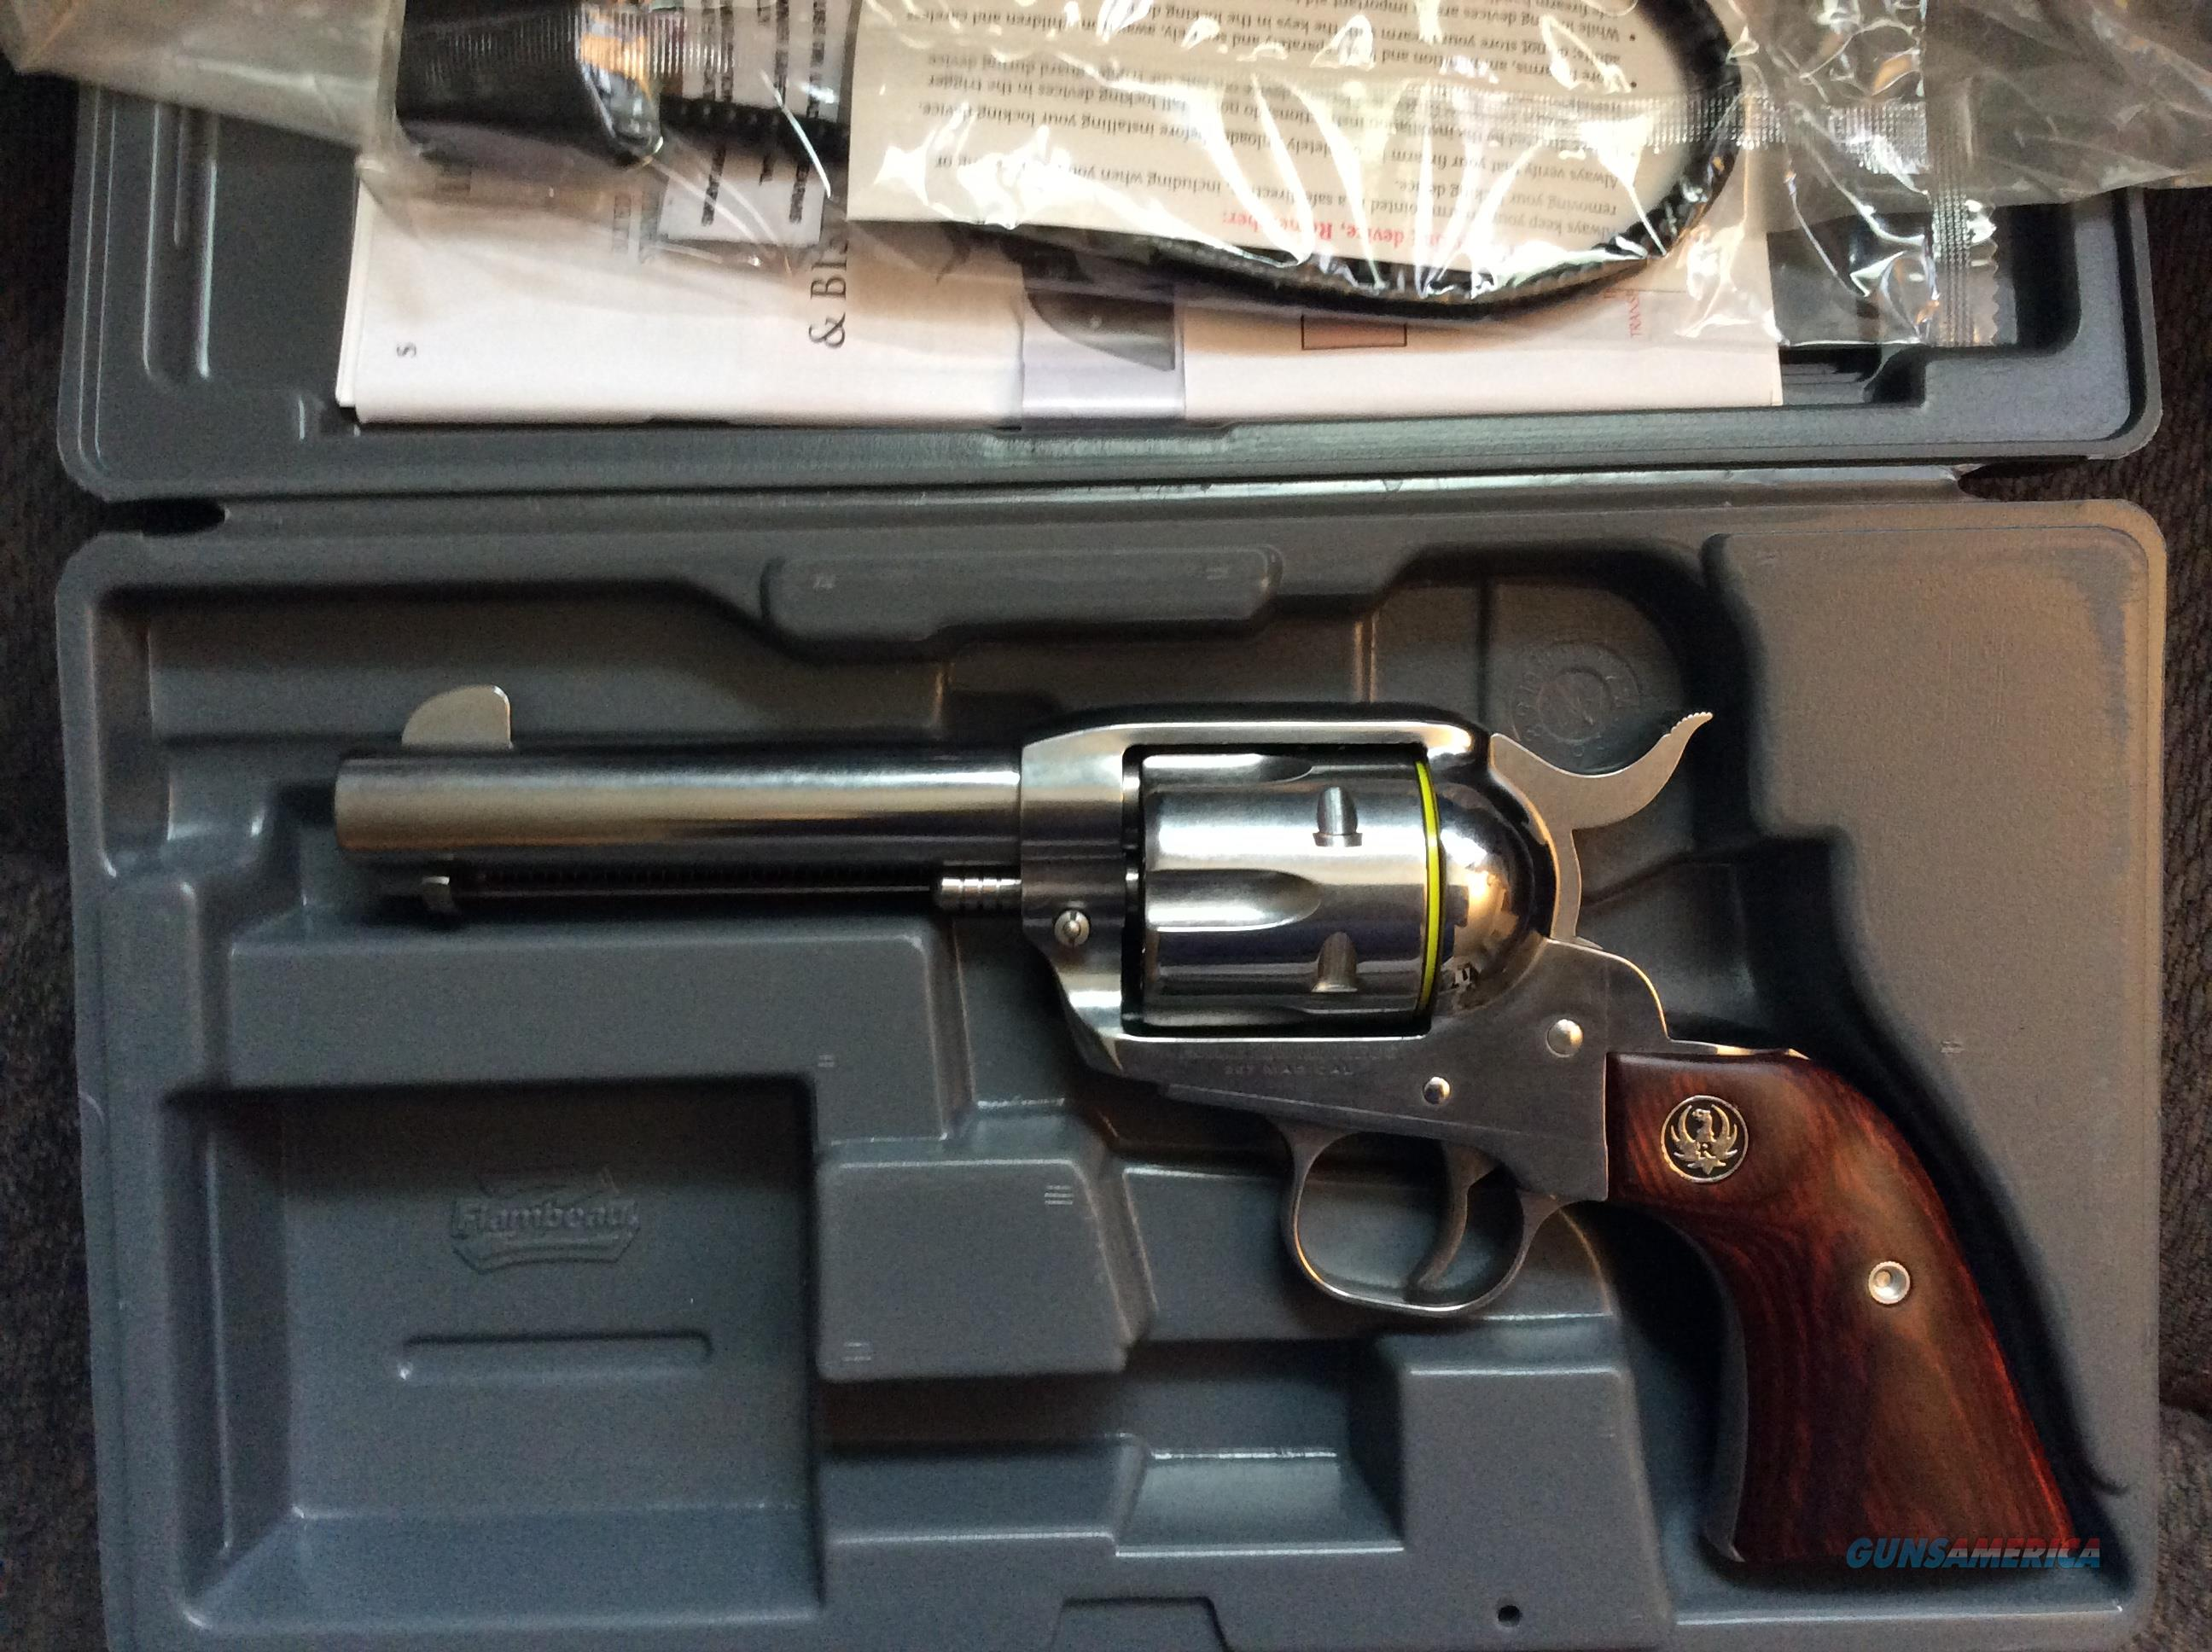 Ruger New Vaquero in 357 magnum 4.62 inch barrle  Guns > Pistols > Ruger Single Action Revolvers > Cowboy Action